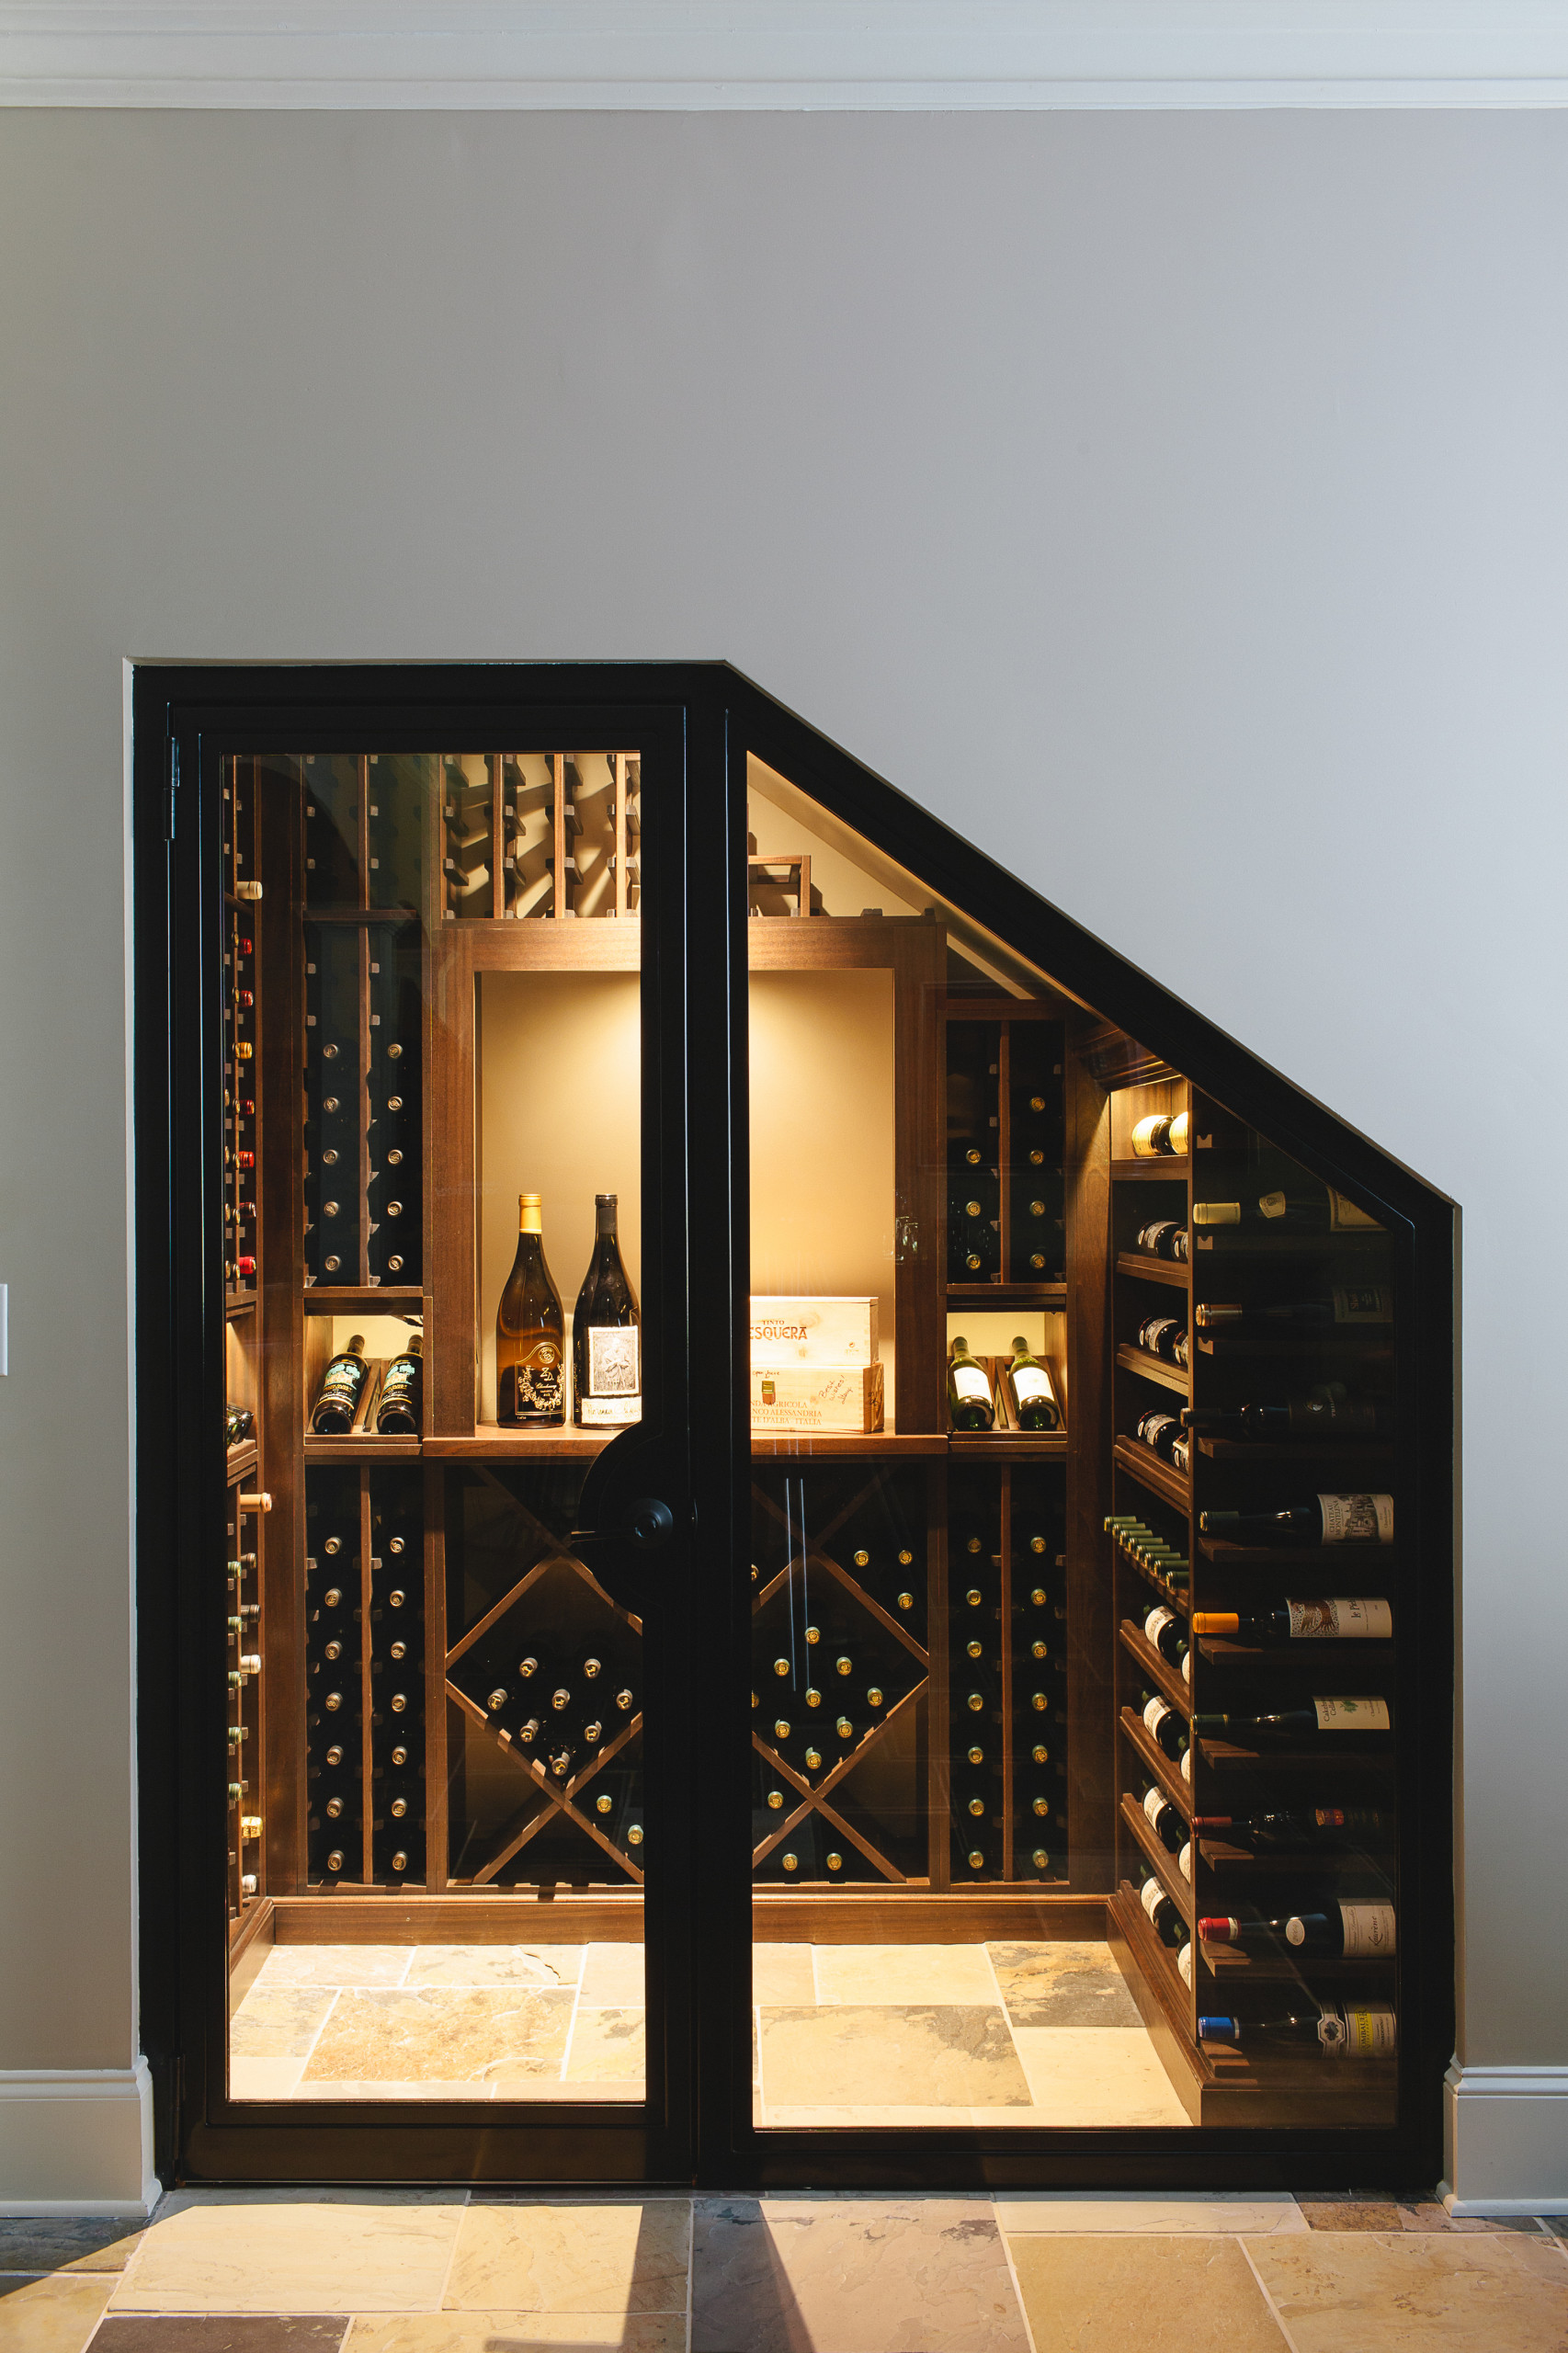 75 Beautiful Small Wine Cellar Pictures Ideas January 2021 Houzz